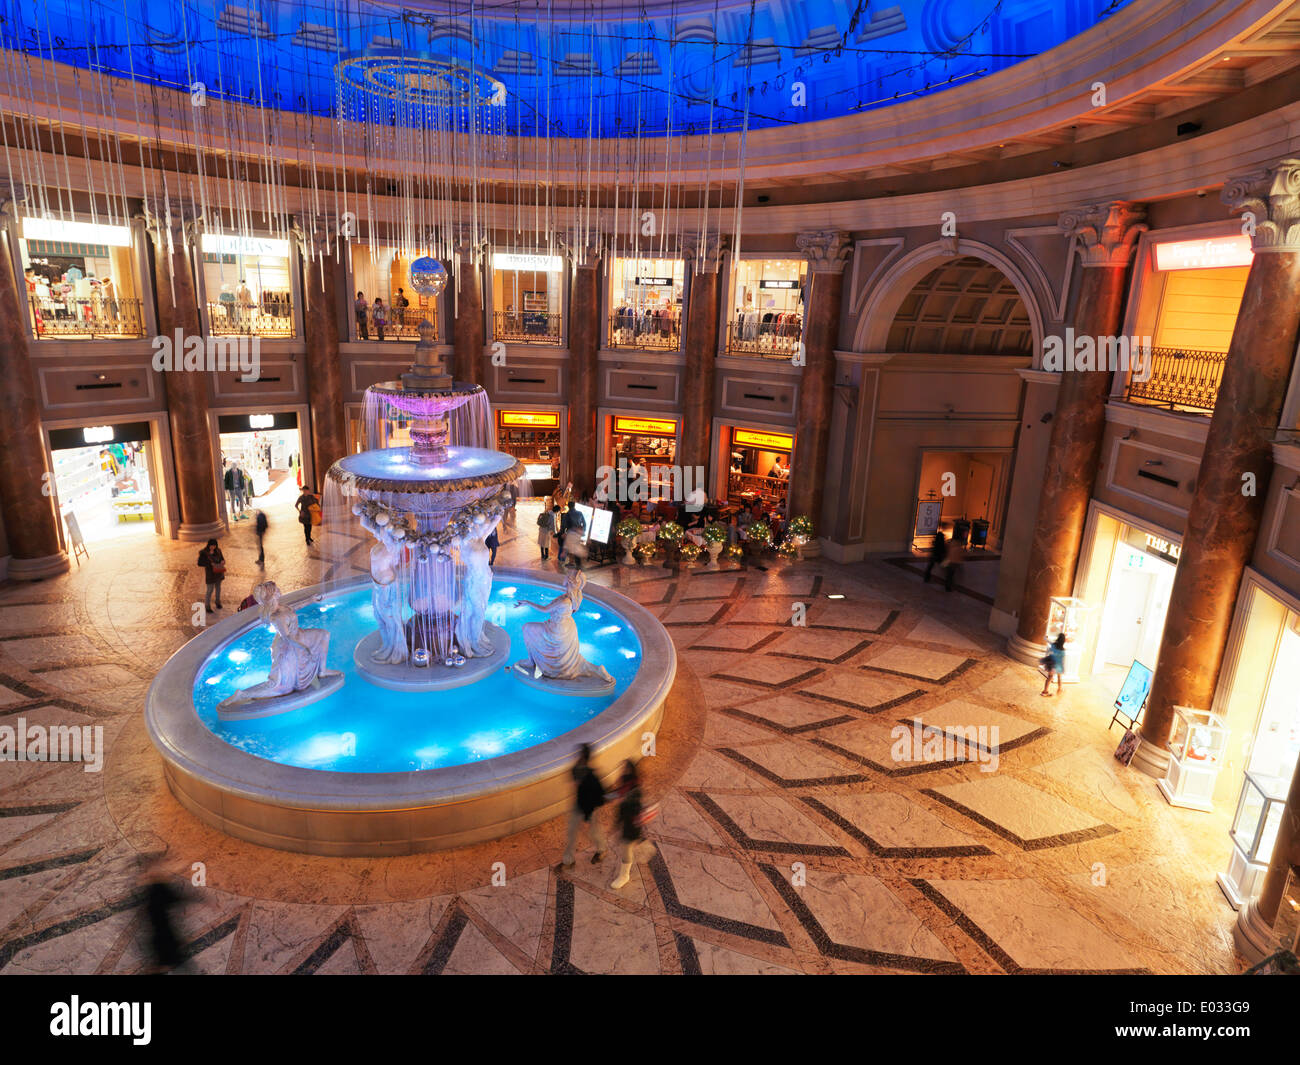 Beautiful Fountain At Venus Fort Venice Themed Shopping Mall In Odaiba,  Tokyo, Japan